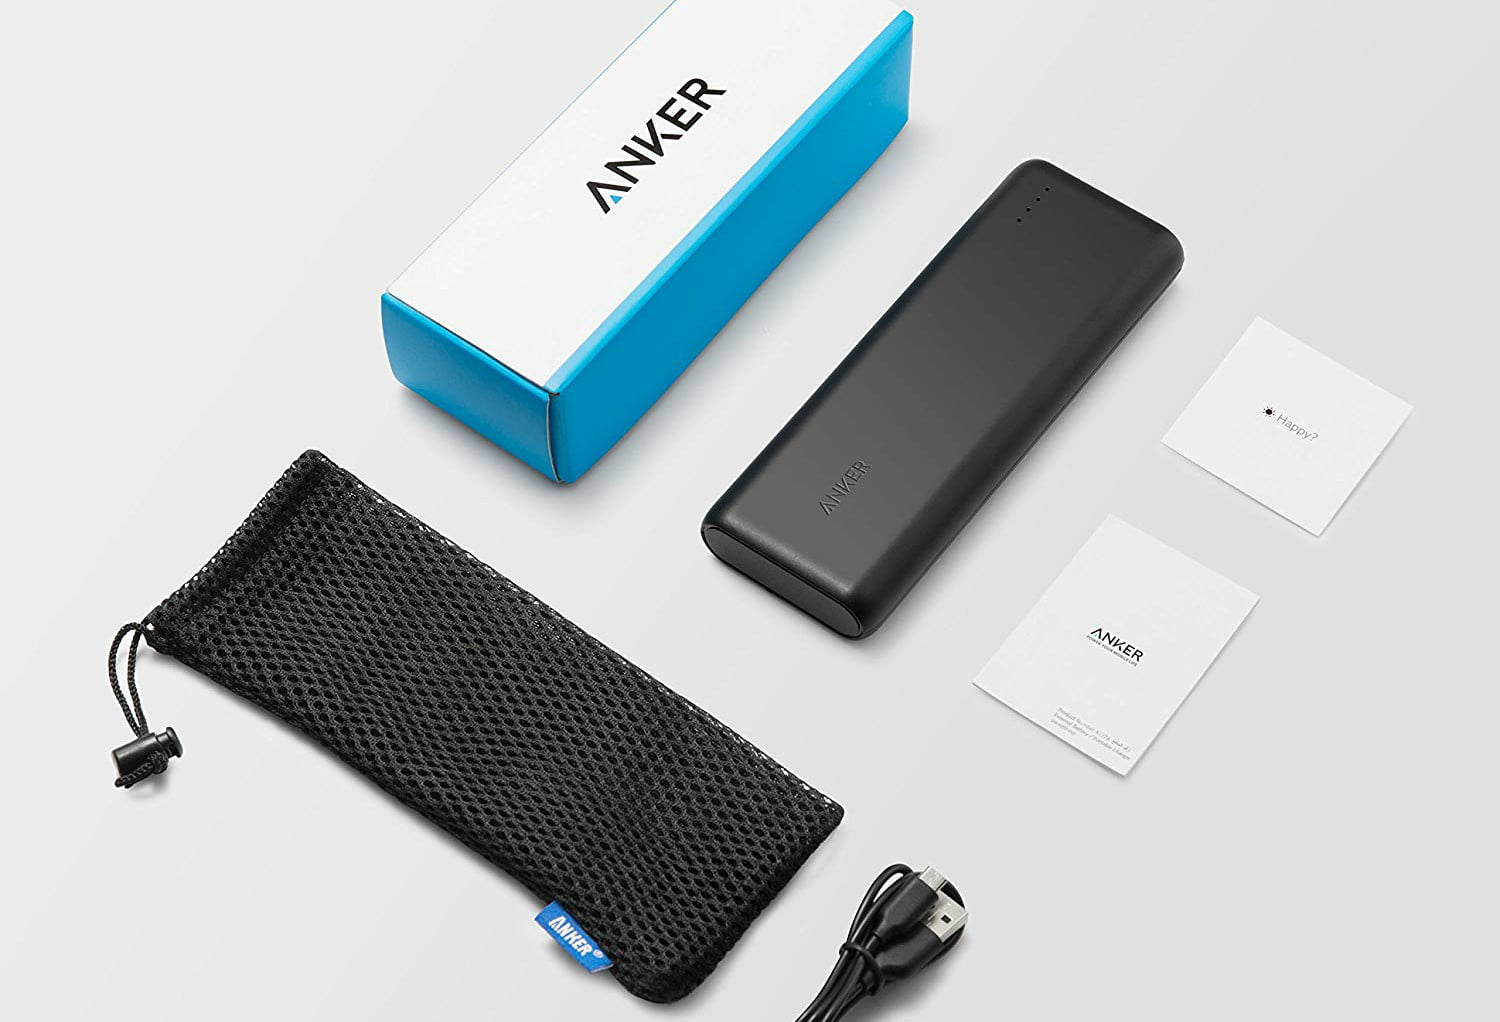 amazon daily deals on anker iphone wireless chargers usb powercore speed 20000 20000mah qualcomm quick charge 3 0 and poweriq